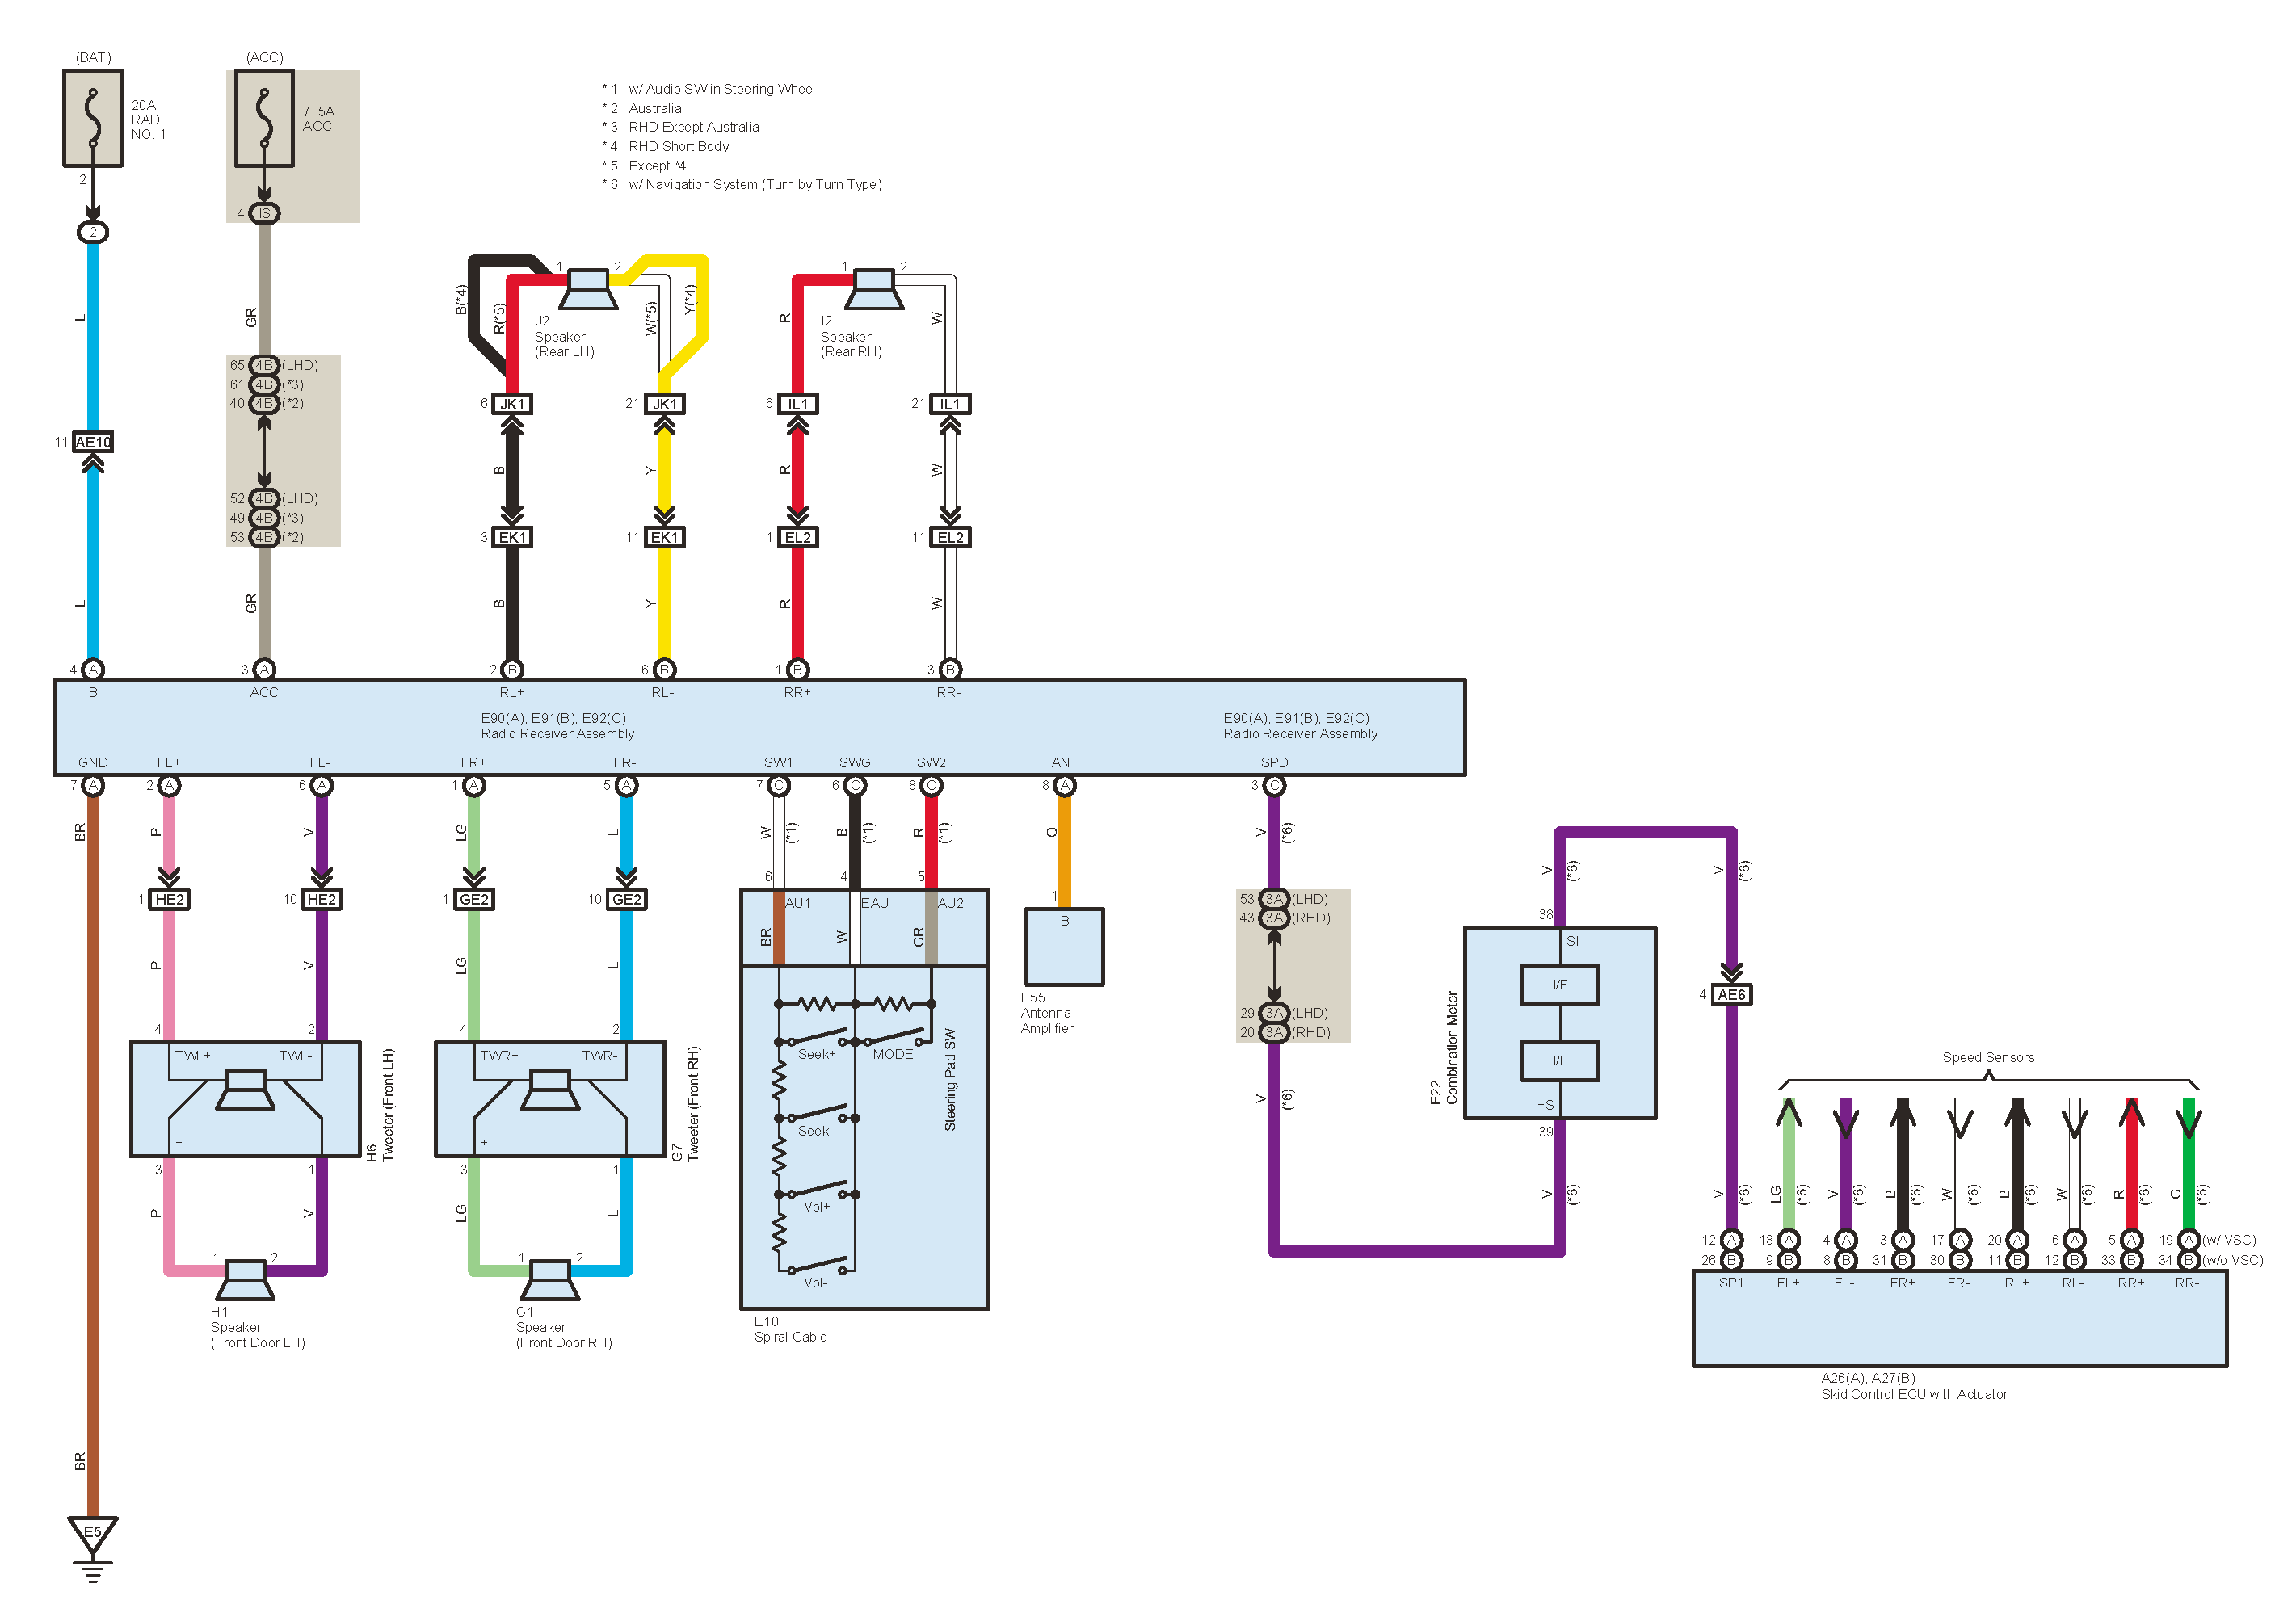 AS toyota rav4 wiring diagram porsche cayenne wiring diagram \u2022 wiring 2000 toyota rav4 wiring diagram at aneh.co